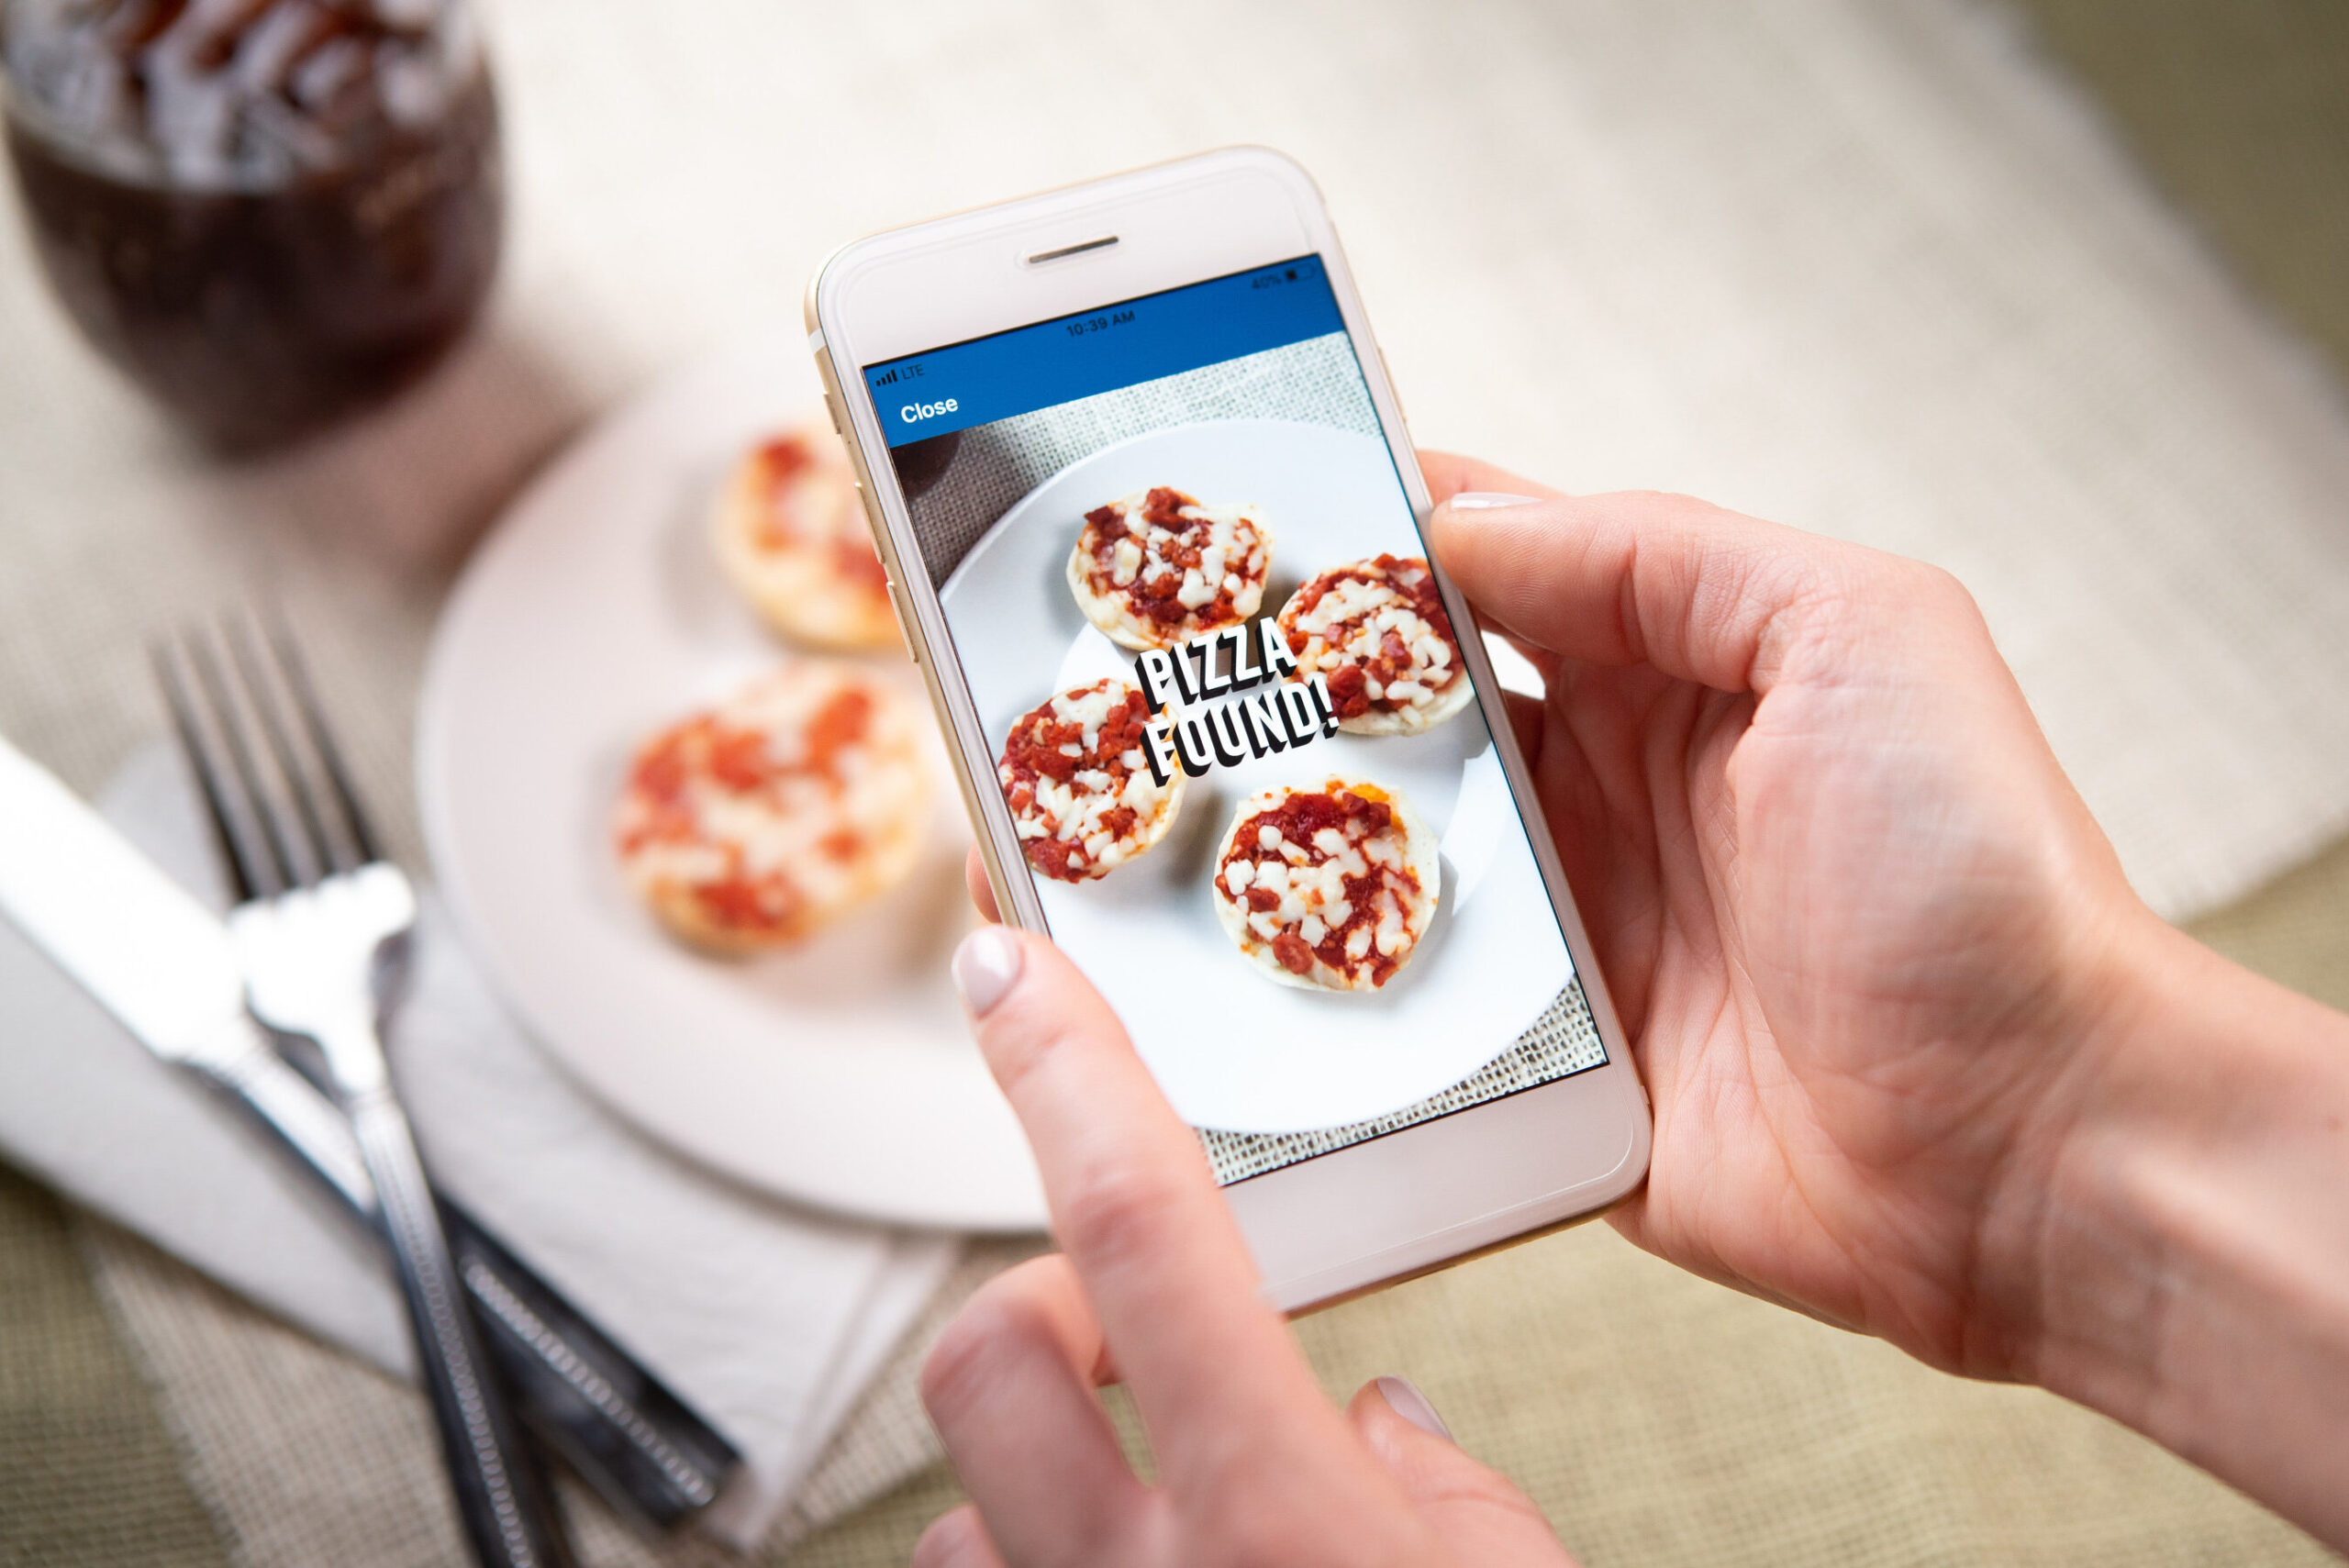 Person holding cell phone with opened app that will scan their pizza for further information.